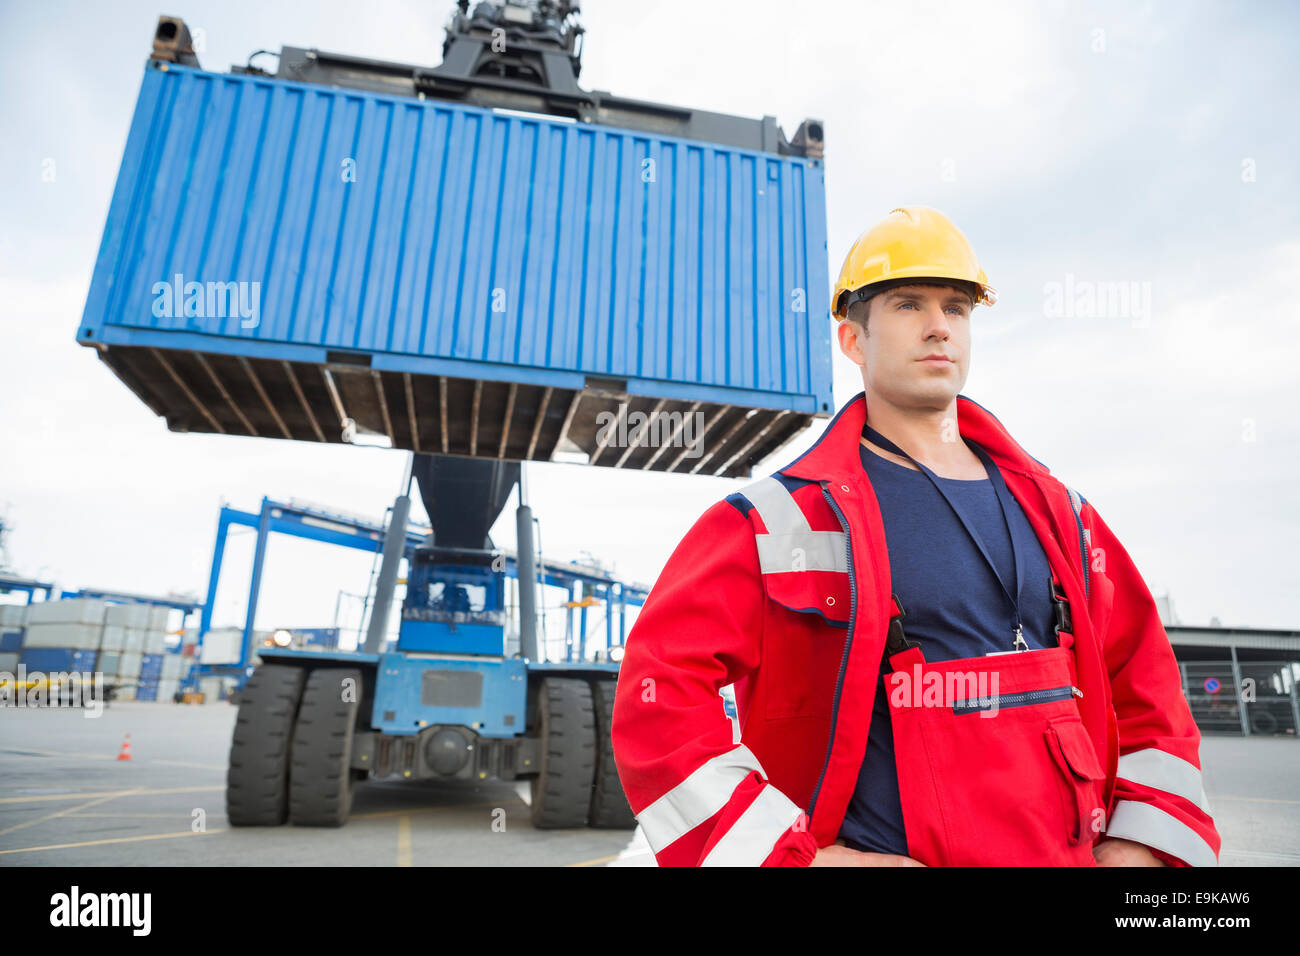 Confident male worker standing in front of freight vehicle at shipyard - Stock Image